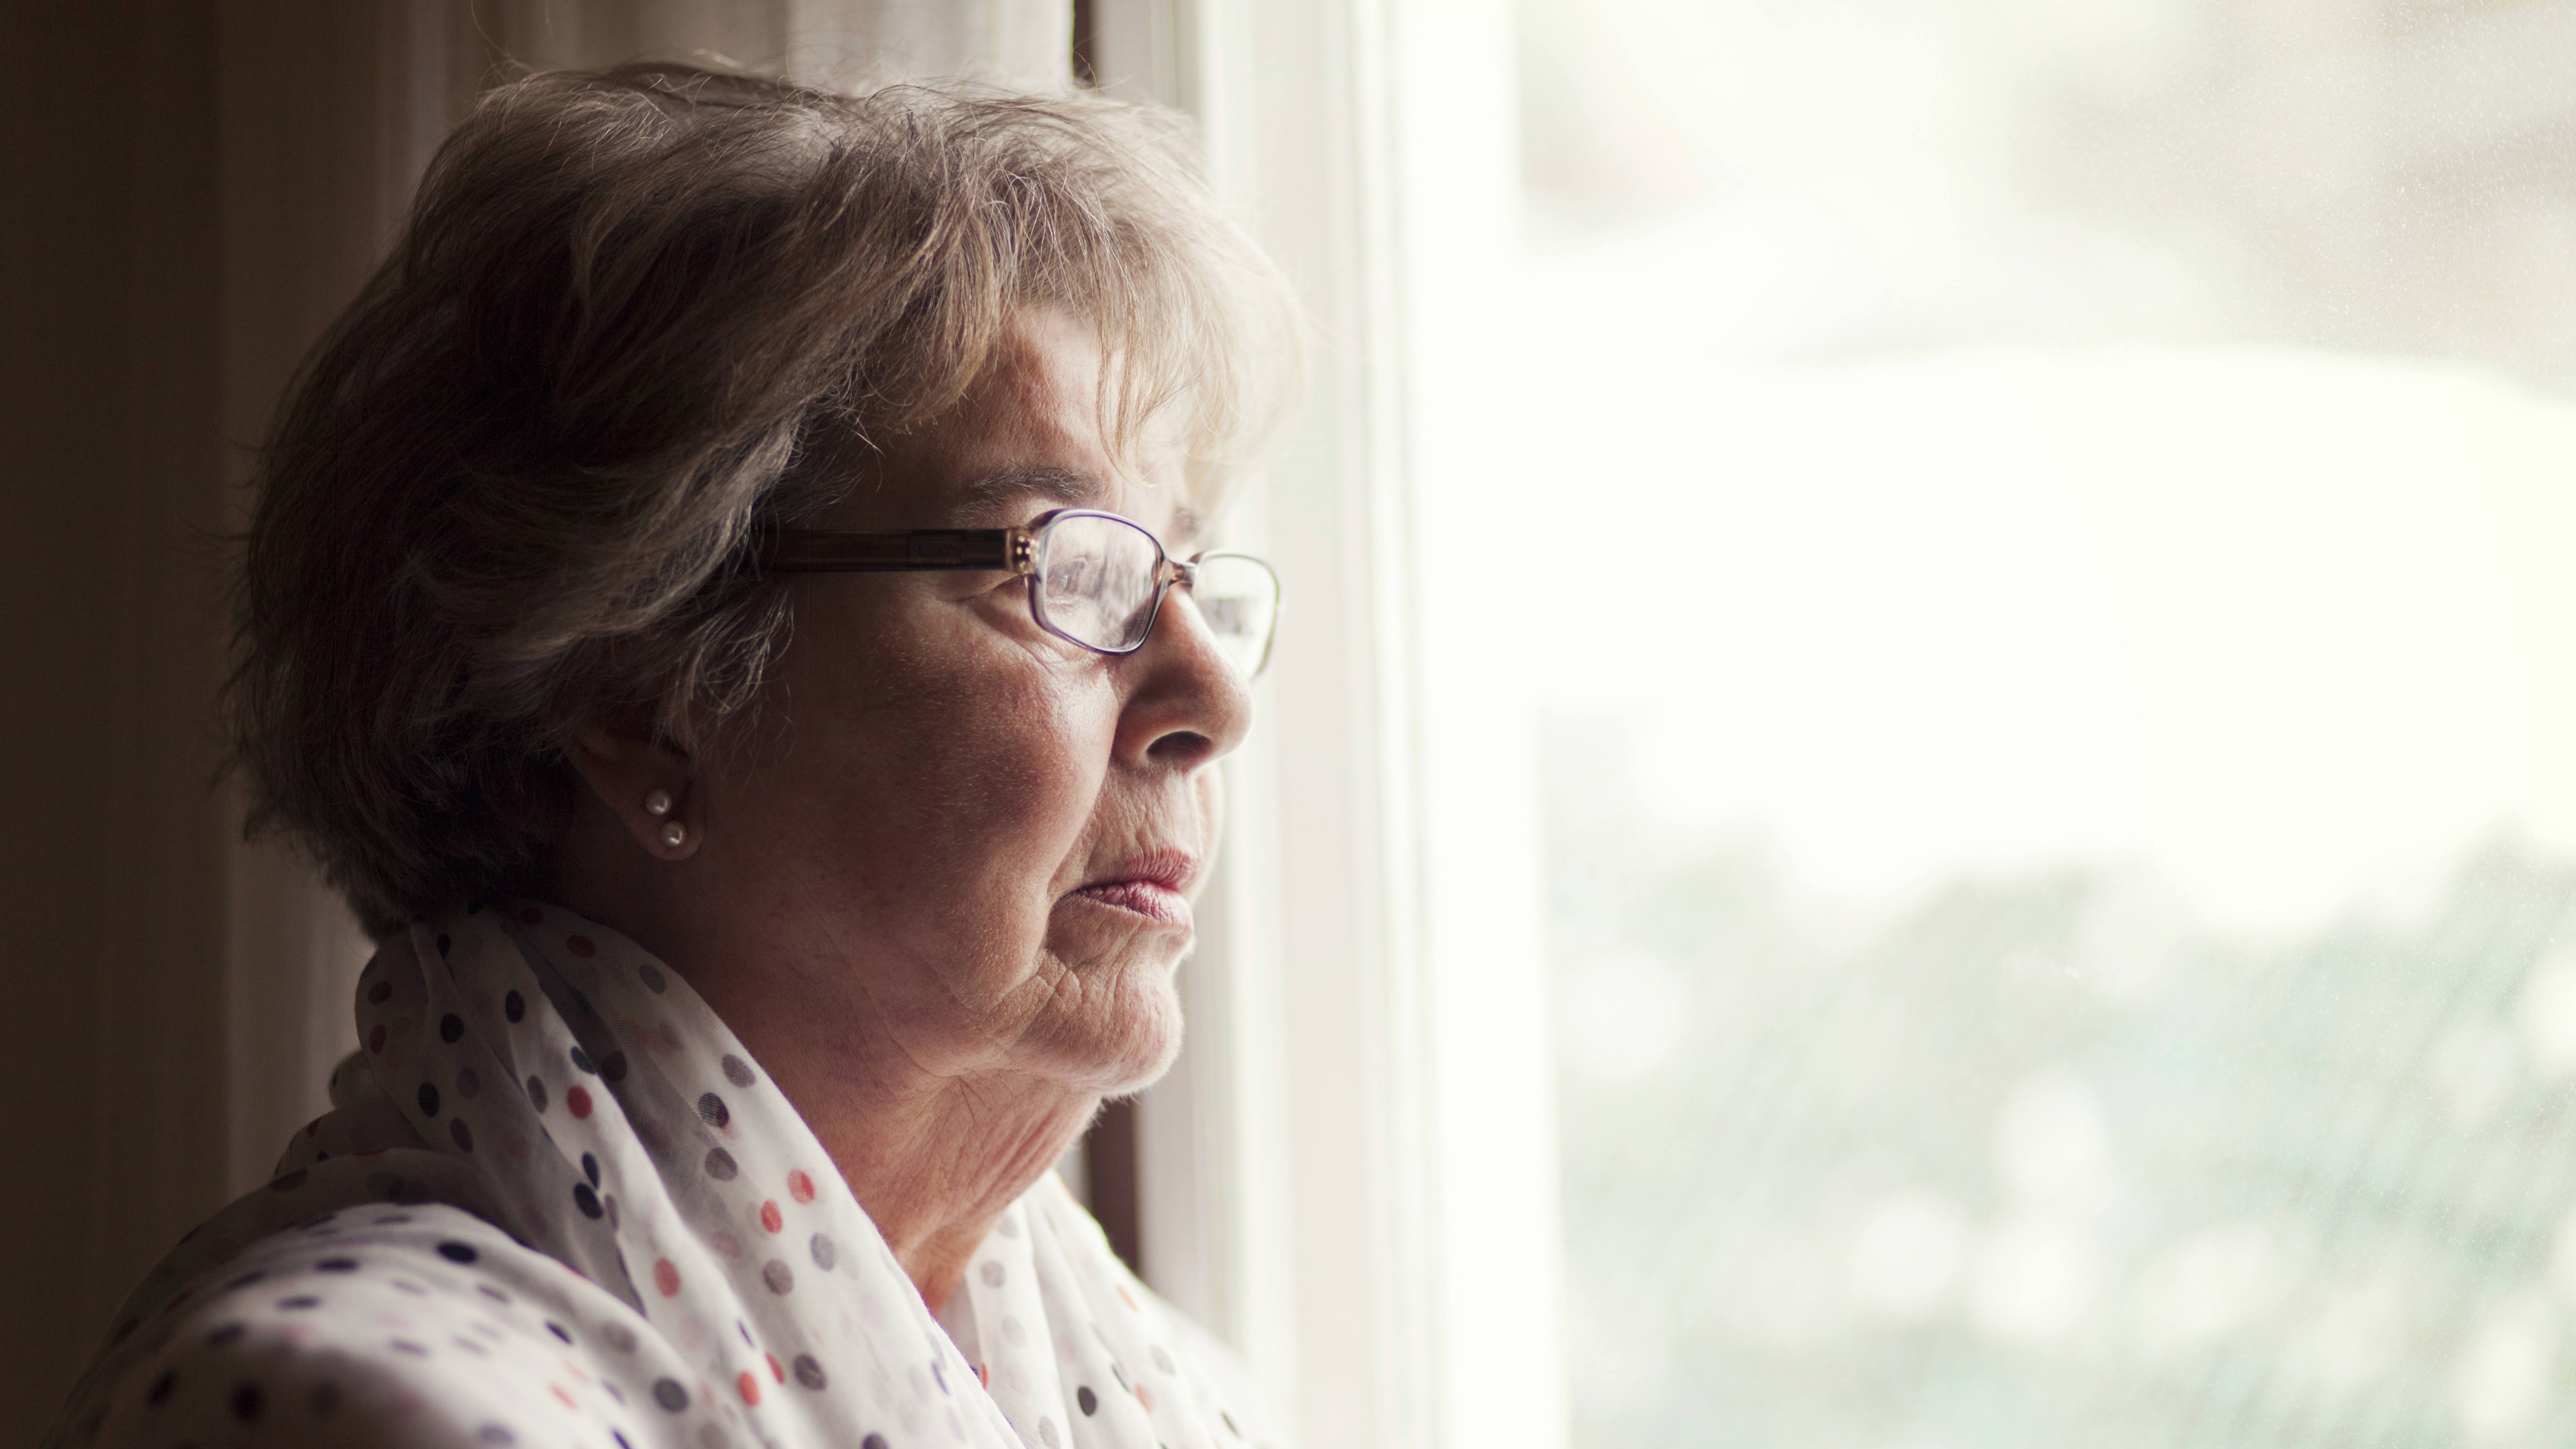 a middle-aged woman wearing glasses and looking out a window, perhaps sad, disappointed or depressed